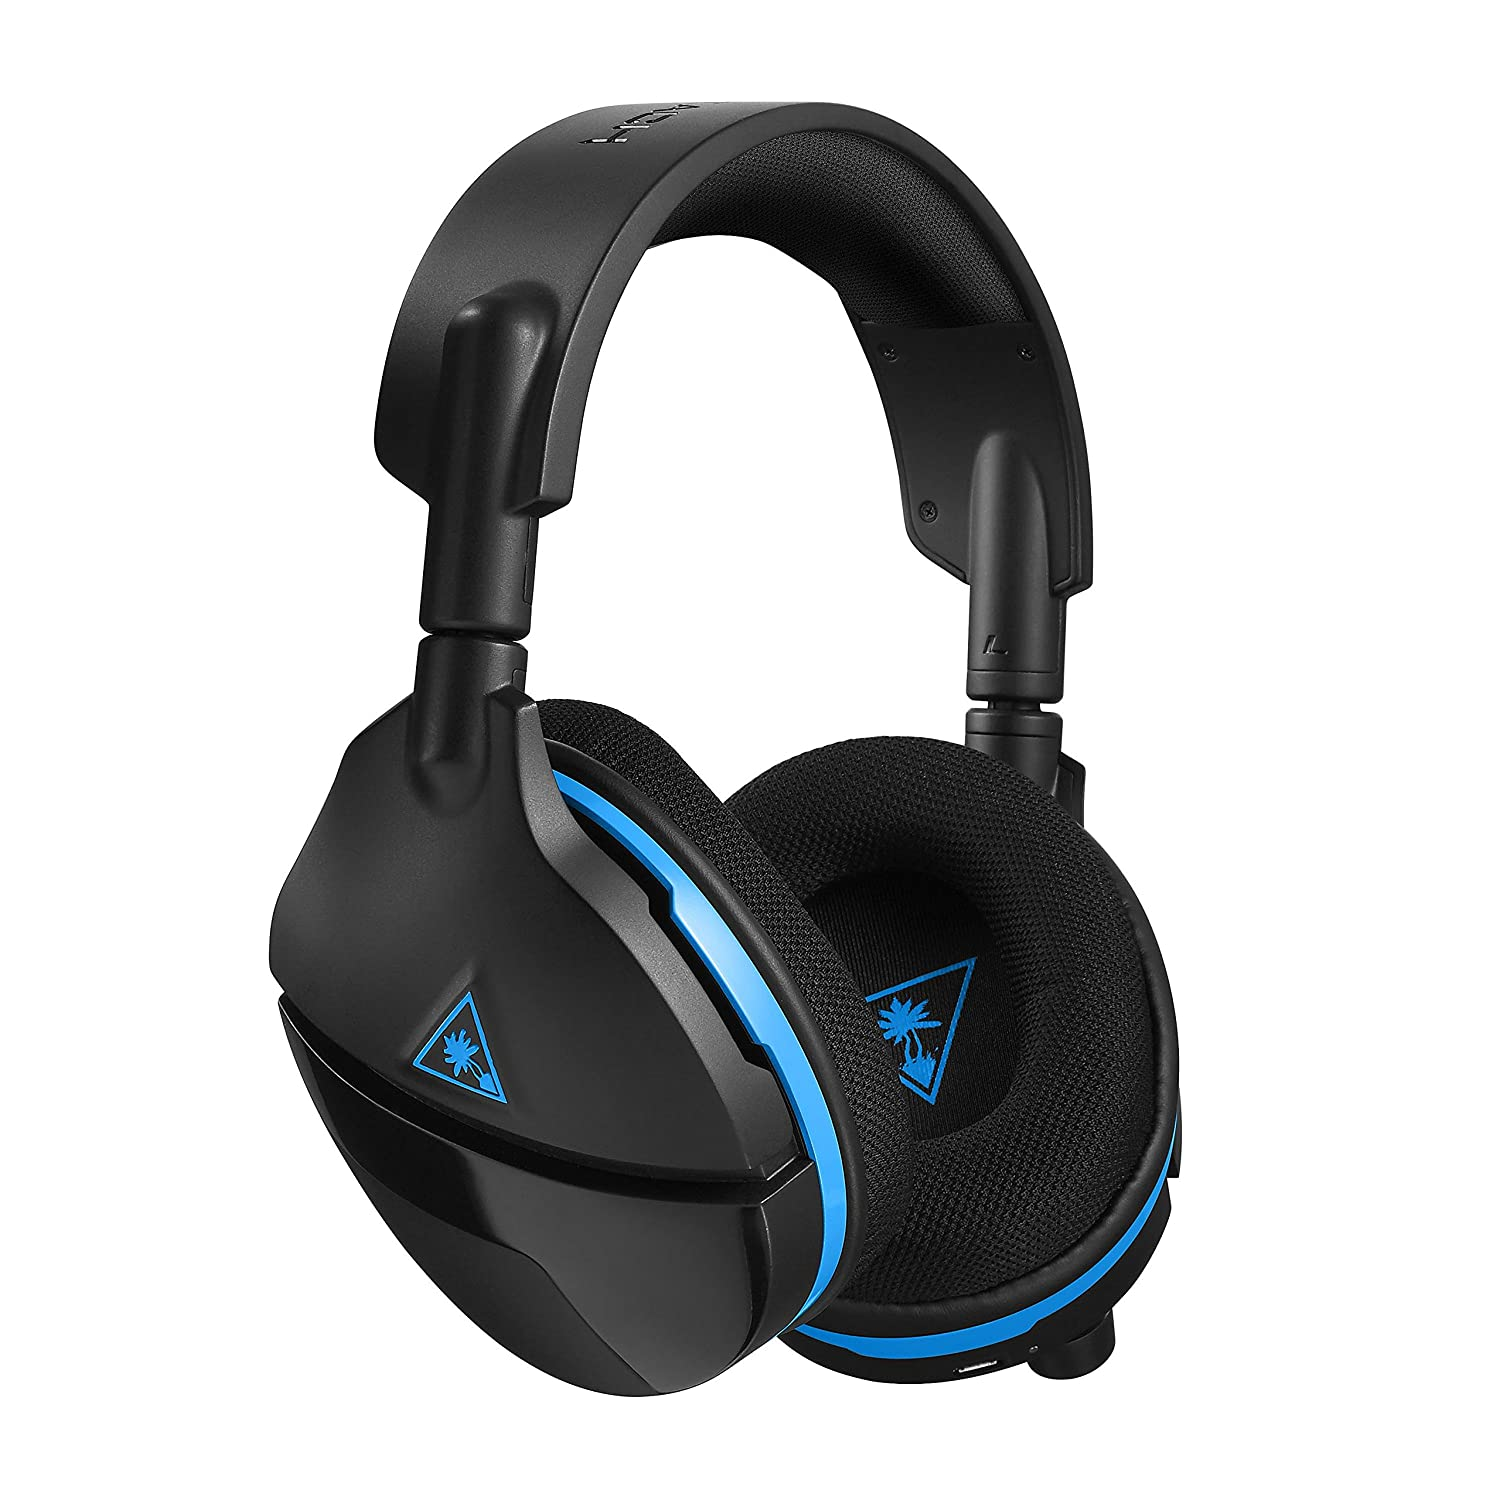 Amazon Com Turtle Beach Stealth 600 Wireless Surround Sound Gaming Headset For Playstation 4 Pro And Playstation 4 Video Games